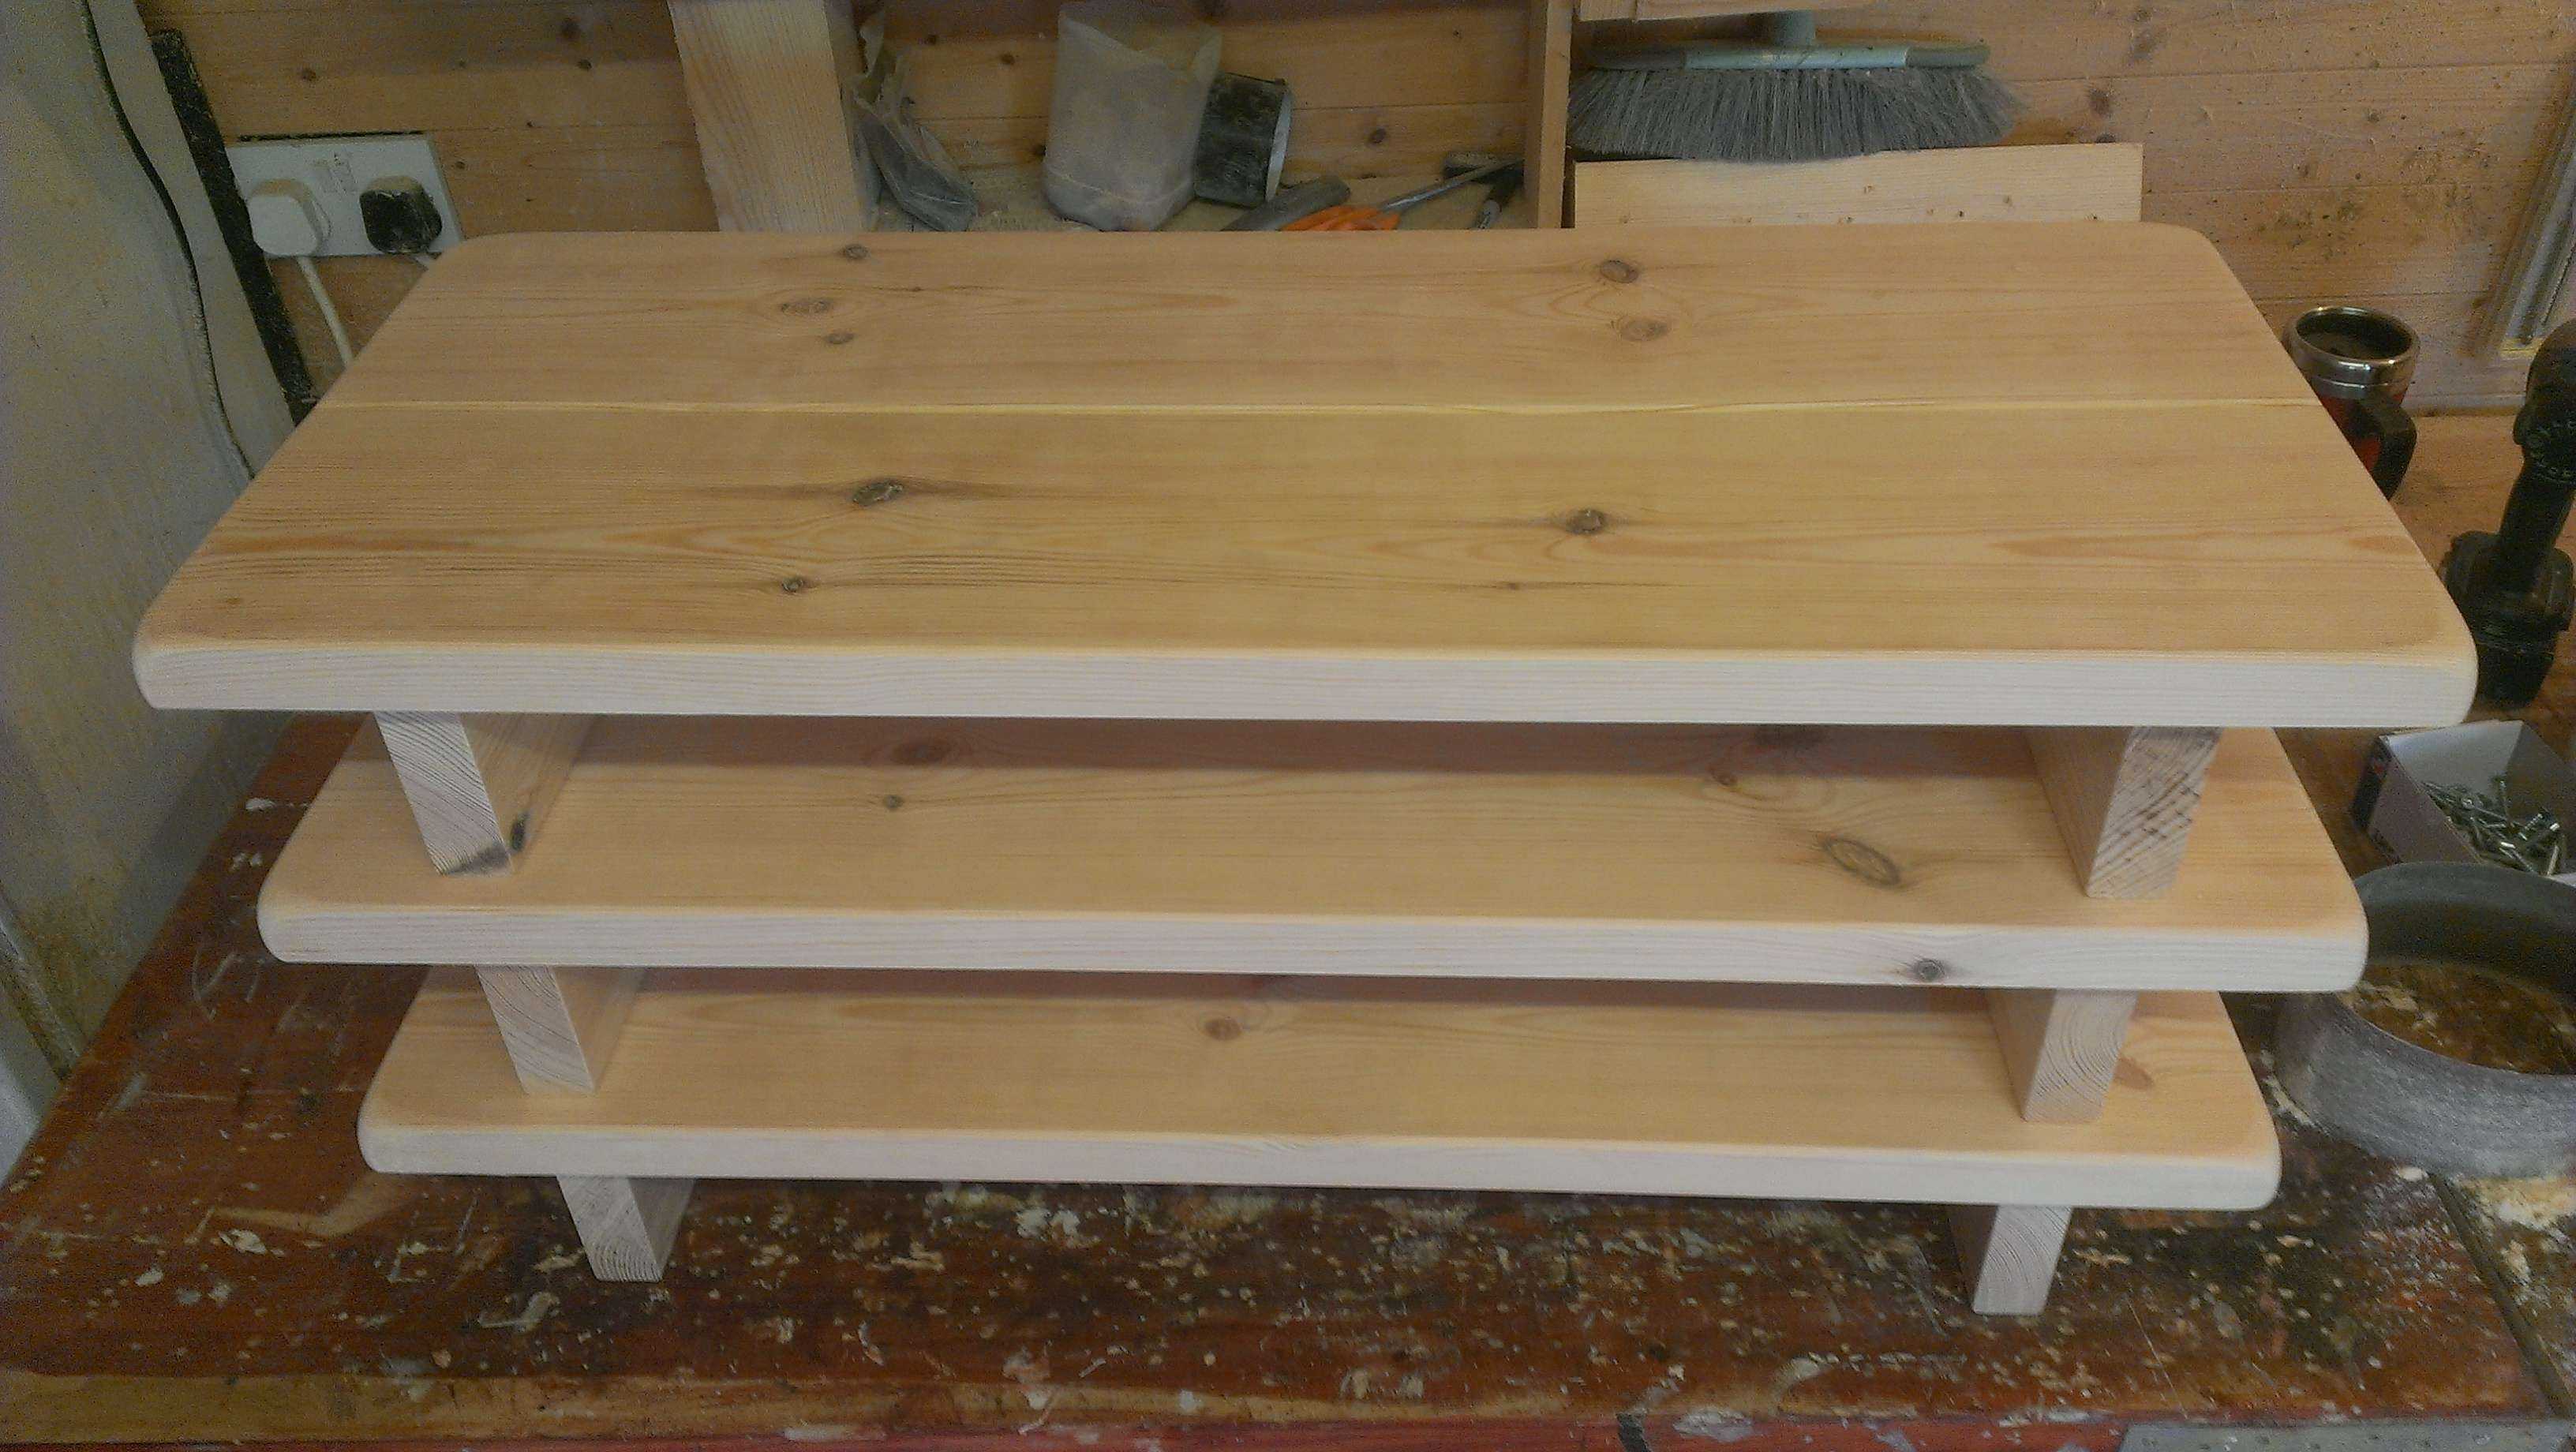 Tv Stand : Pine Tv Standorner Stands For Flat Screenspine Plans Intended For Pine Tv Stands (View 6 of 20)